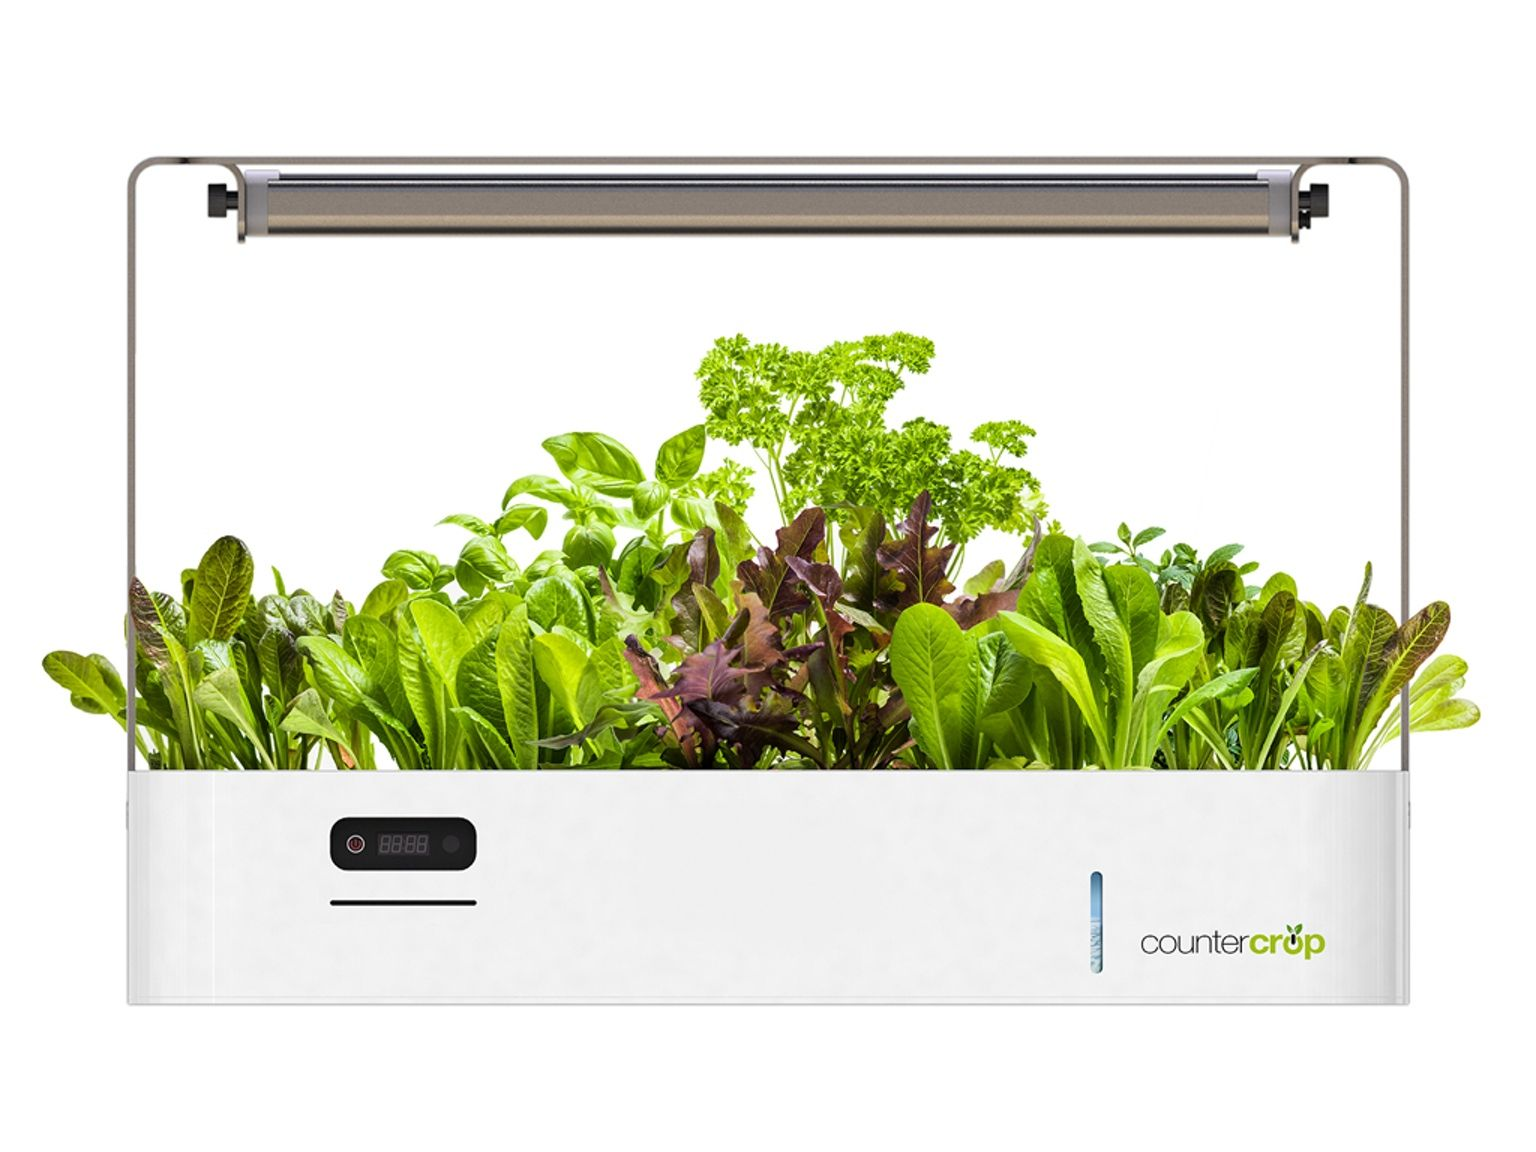 Countercrop The Modern Way To Grow Your Own Food By Jack Abbott